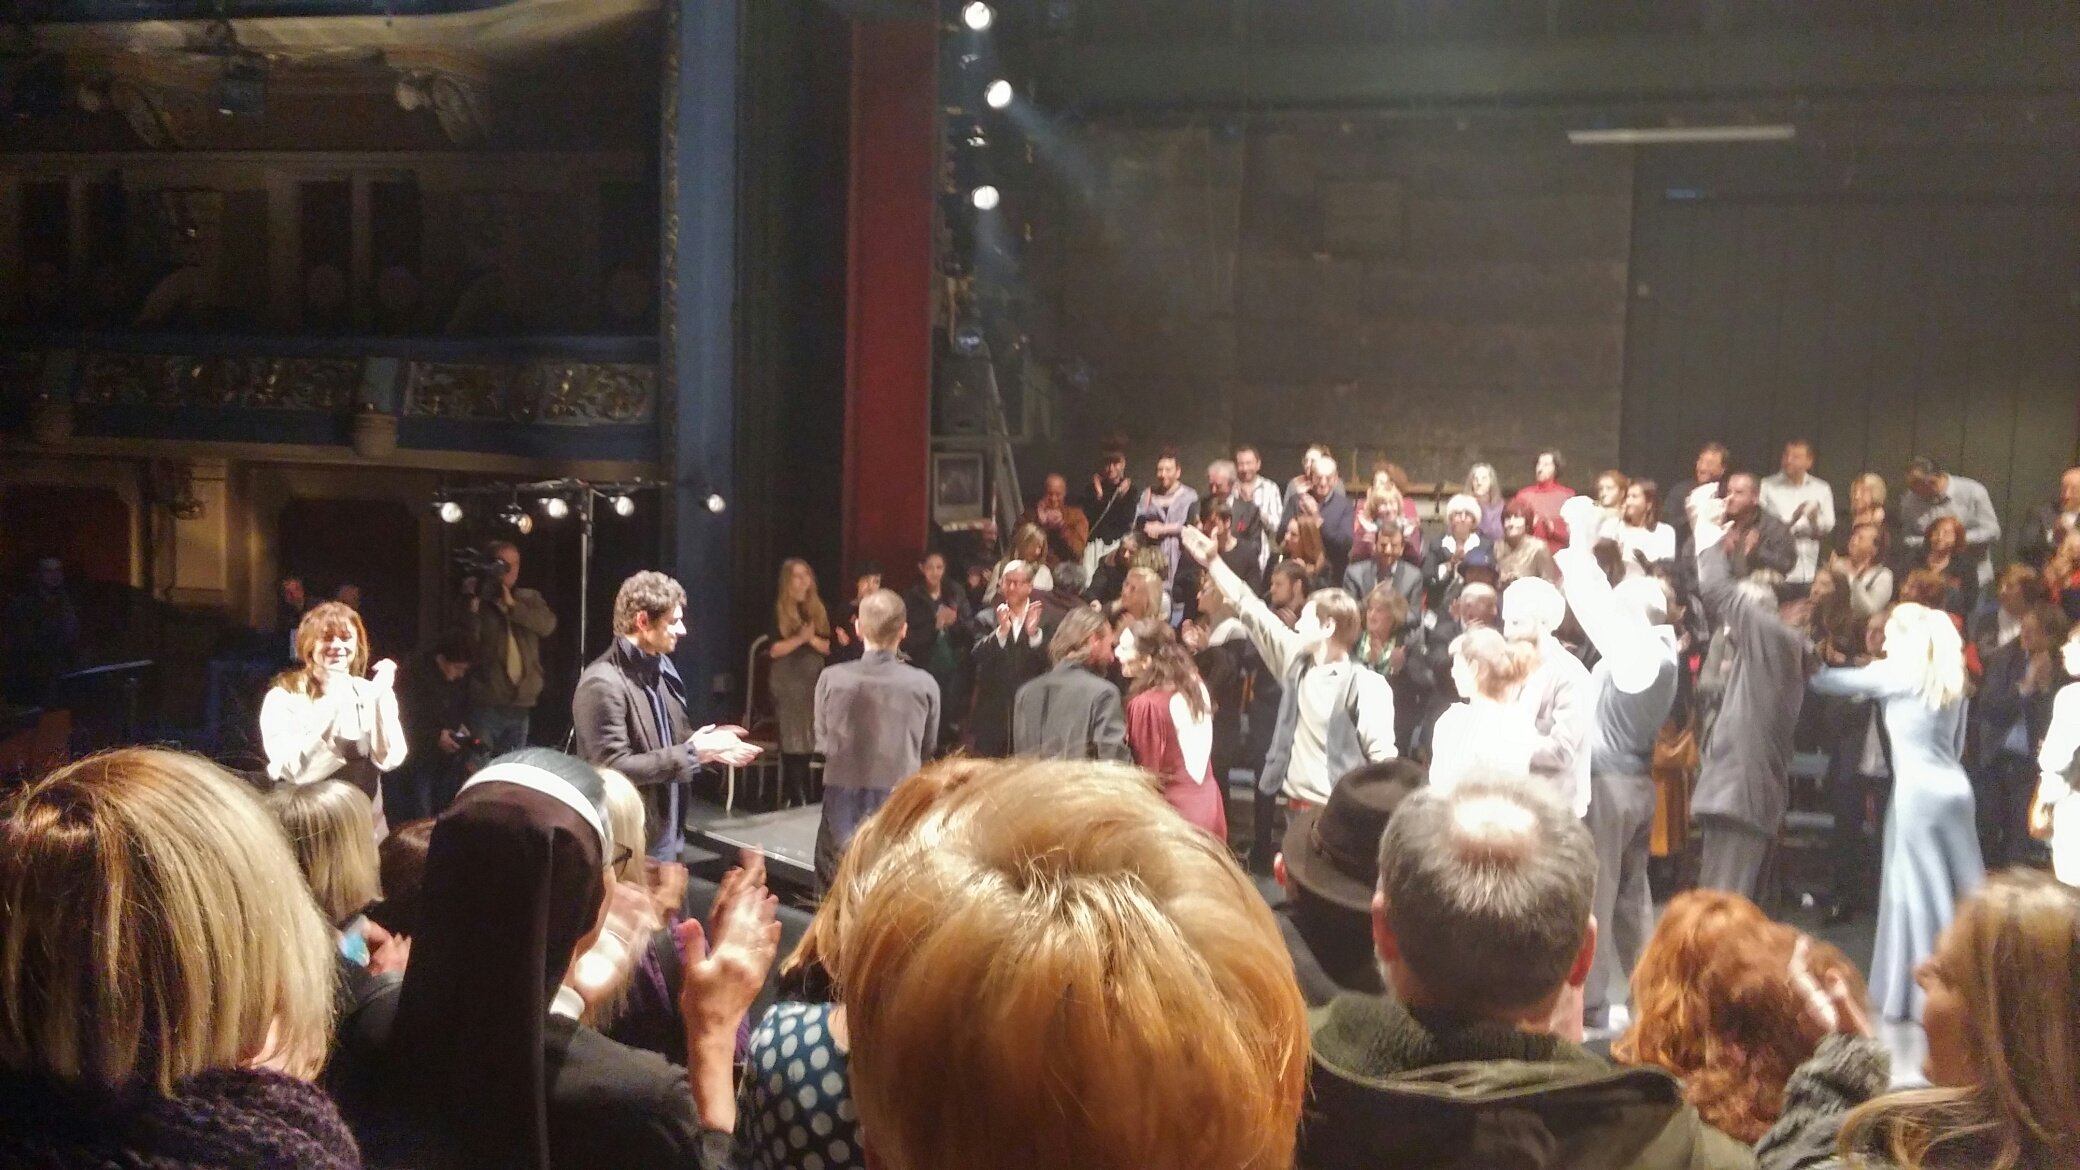 """Standing ovations for """"Romeo and Juliet"""", a theater play produced by Belgrade-based """"Radionica Integracije"""" and """"Quendra Multimedia"""" from Pristina, played in Sarajevo National Theater on 21 March 2016. (Photo: RCC/Ratka Babic)"""